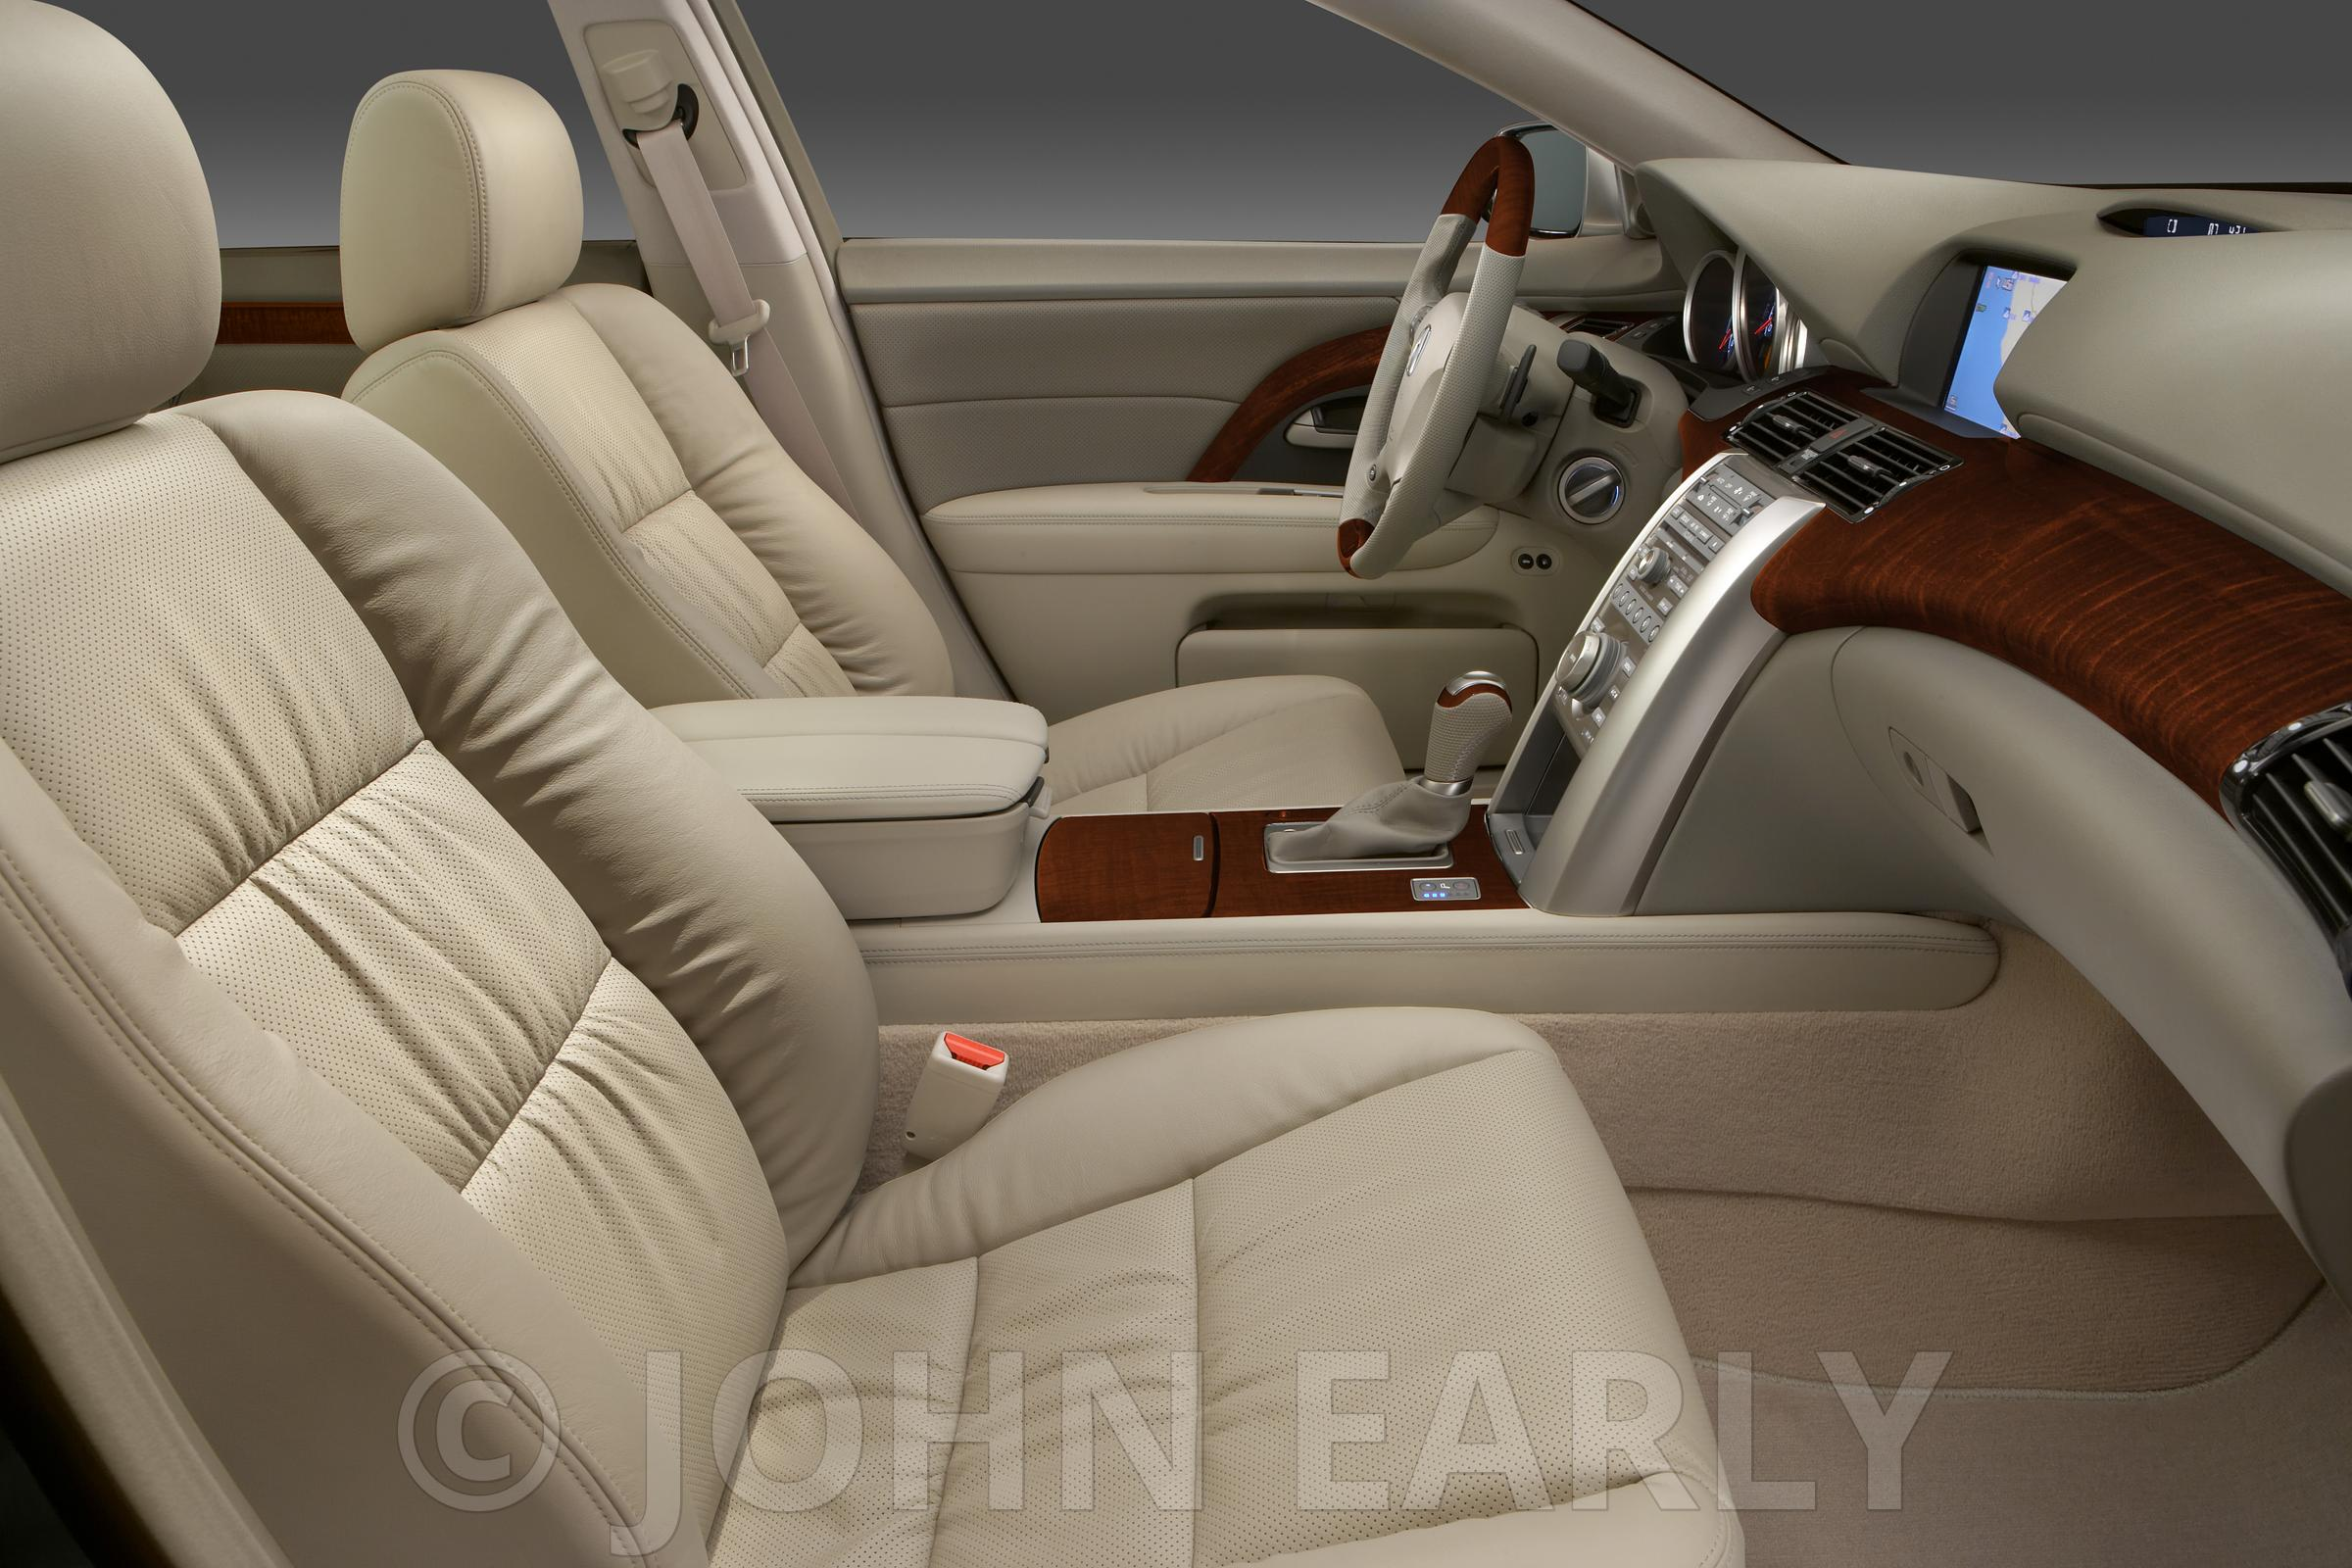 Tan Interior of a Luxury Vehicle From Passanger Side